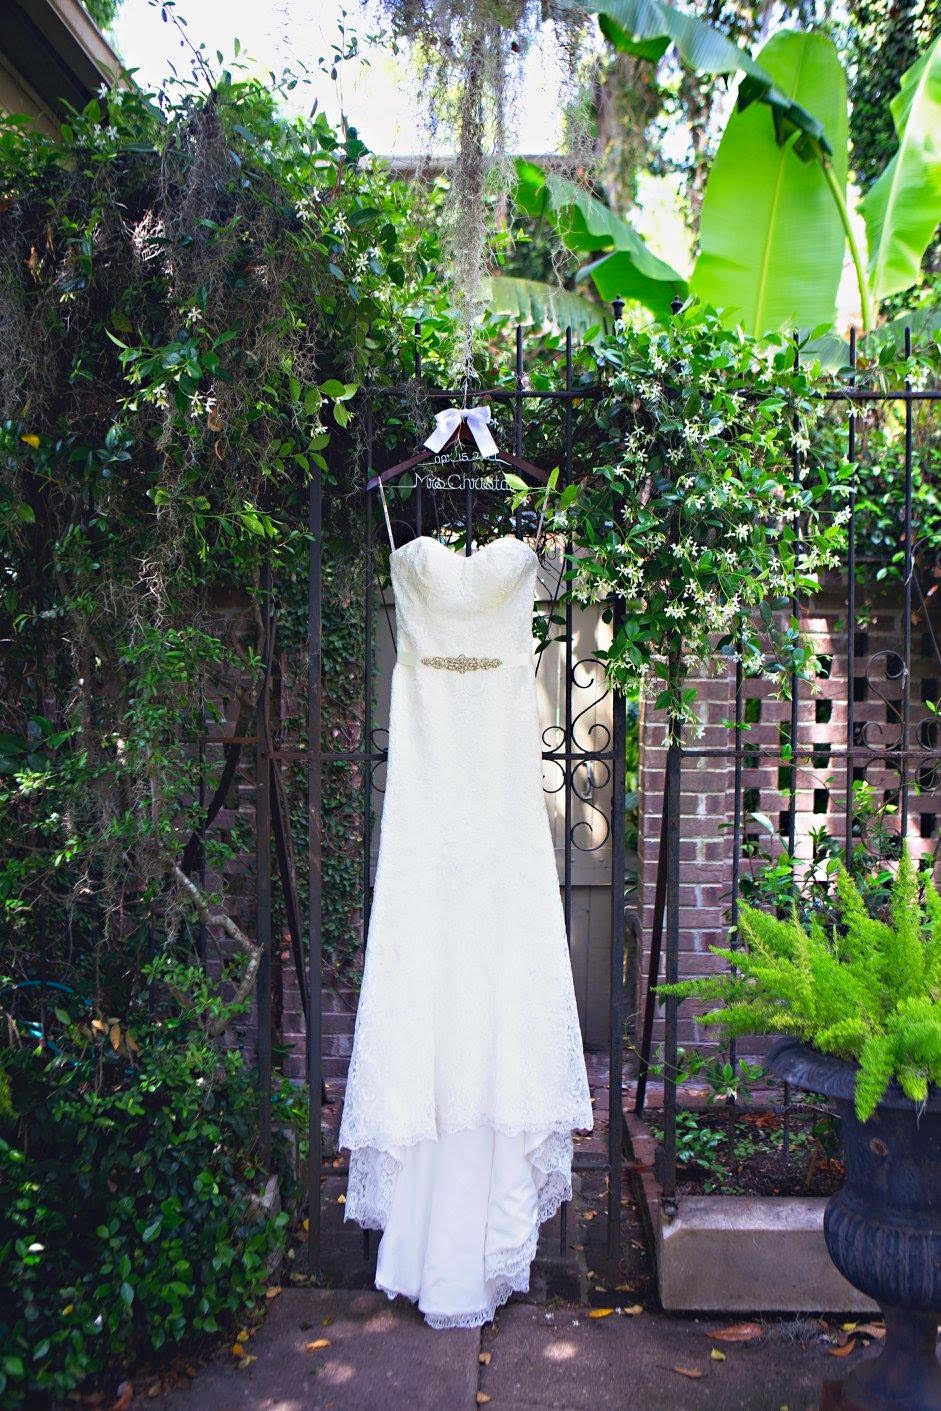 ivory-and-beau-bridal-boutique-savannah-wedding-dress-savannah-wedding-gown-savannah-bridal-boutique-savannah-bridal-shop-savannah-wedding-planner-maggie-sottero-wedding-gown-maggie-sottero-wedding-dress-lottie-maggie-sottero-2.jpg